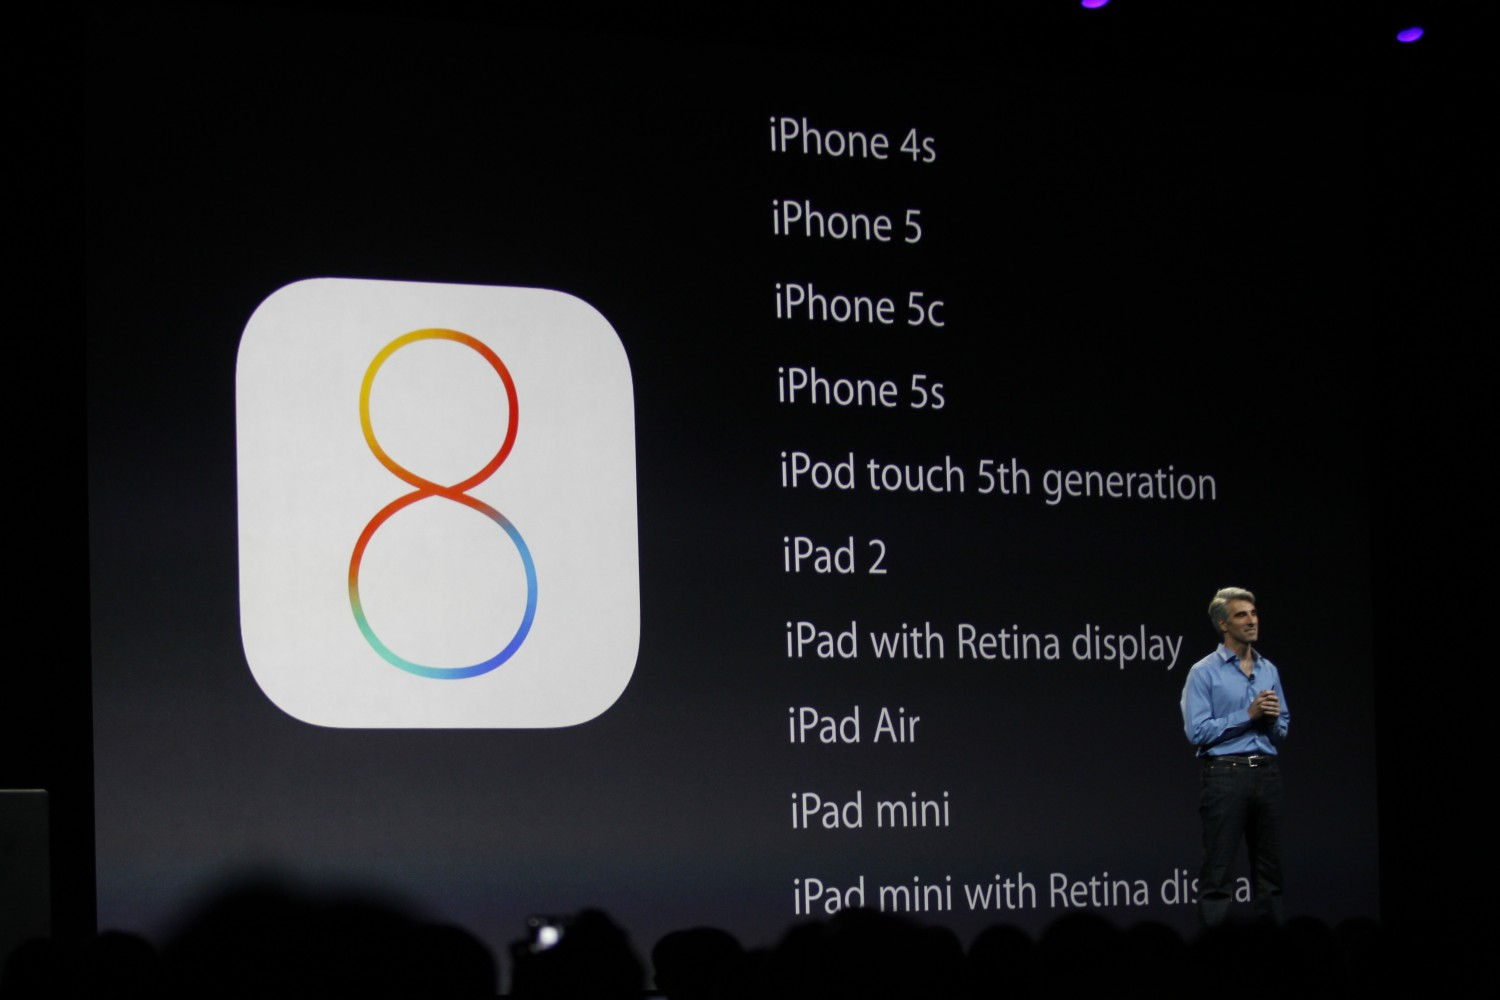 wwdc 2014 1375 Apple announces iOS 8 beta is available today to developers, public release this fall, and no iPhone 4 support